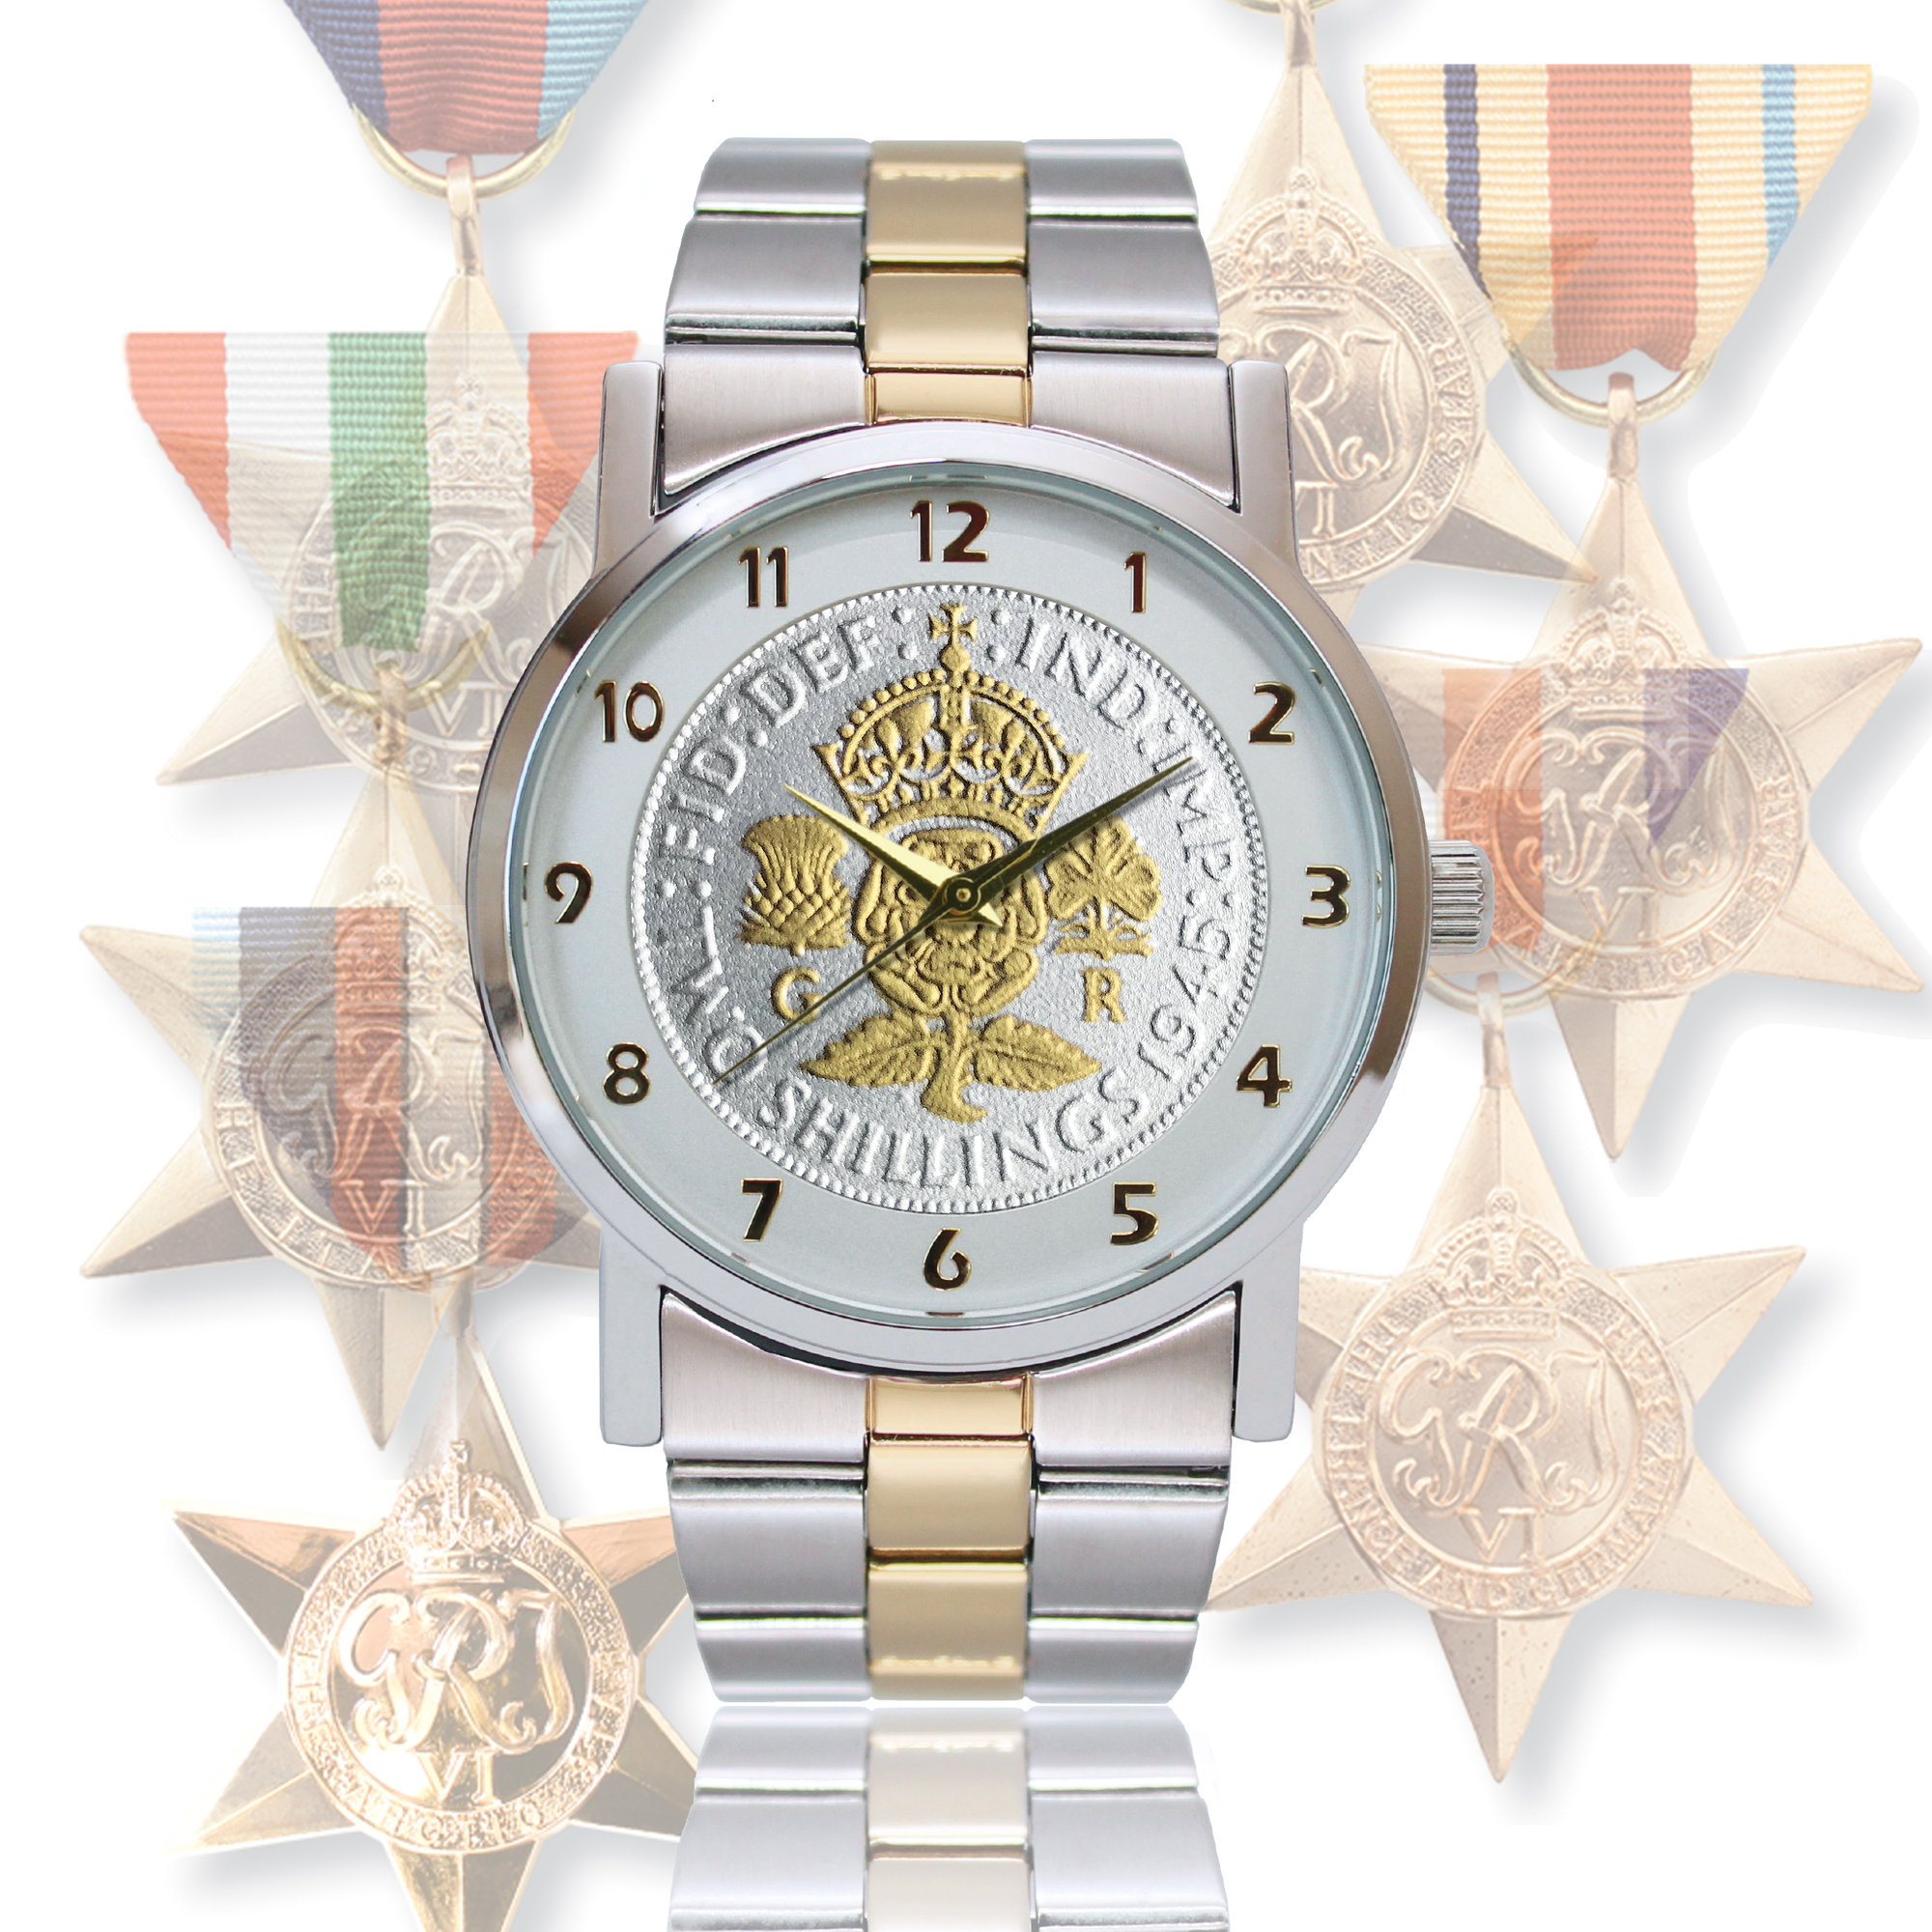 1945 Victory Watch